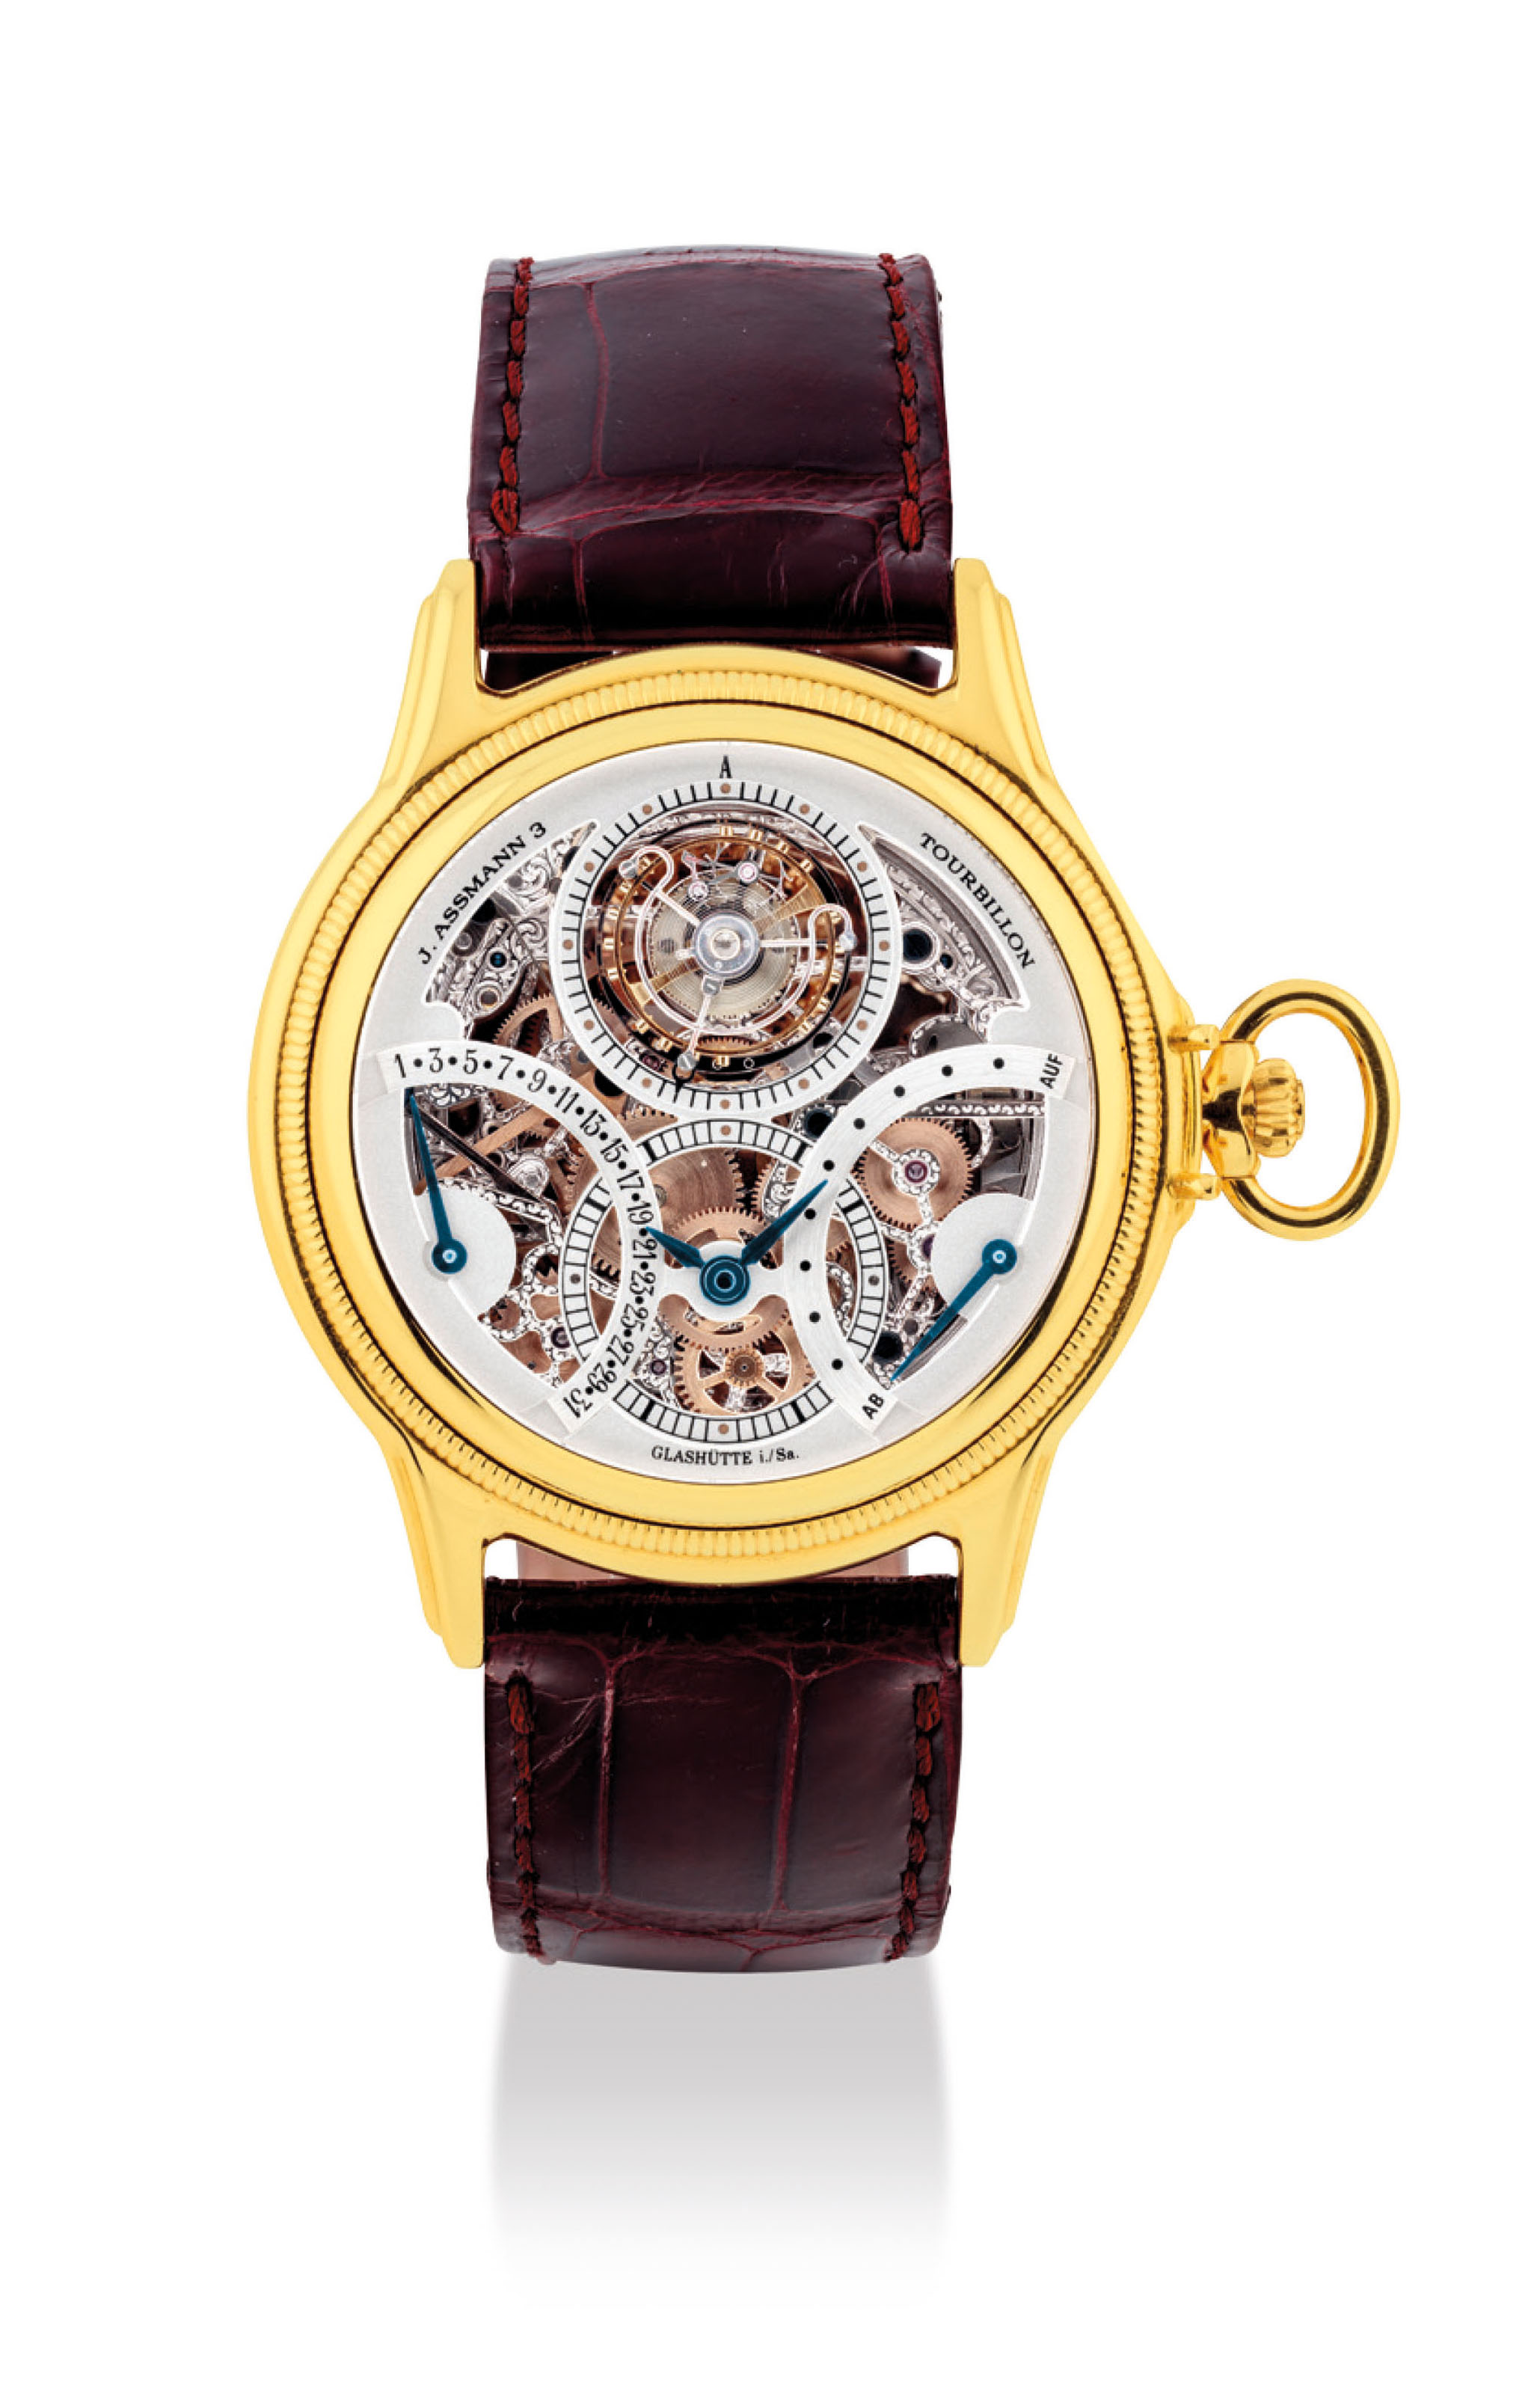 GLASHÜTTE ORIGINAL. A VERY FINE AND RARE 18K PINK GOLD CONVERTIBLE LIMITED EDITION SKELETONISED TOURBILLON WATCH WITH DATE AND POWER RESERVE